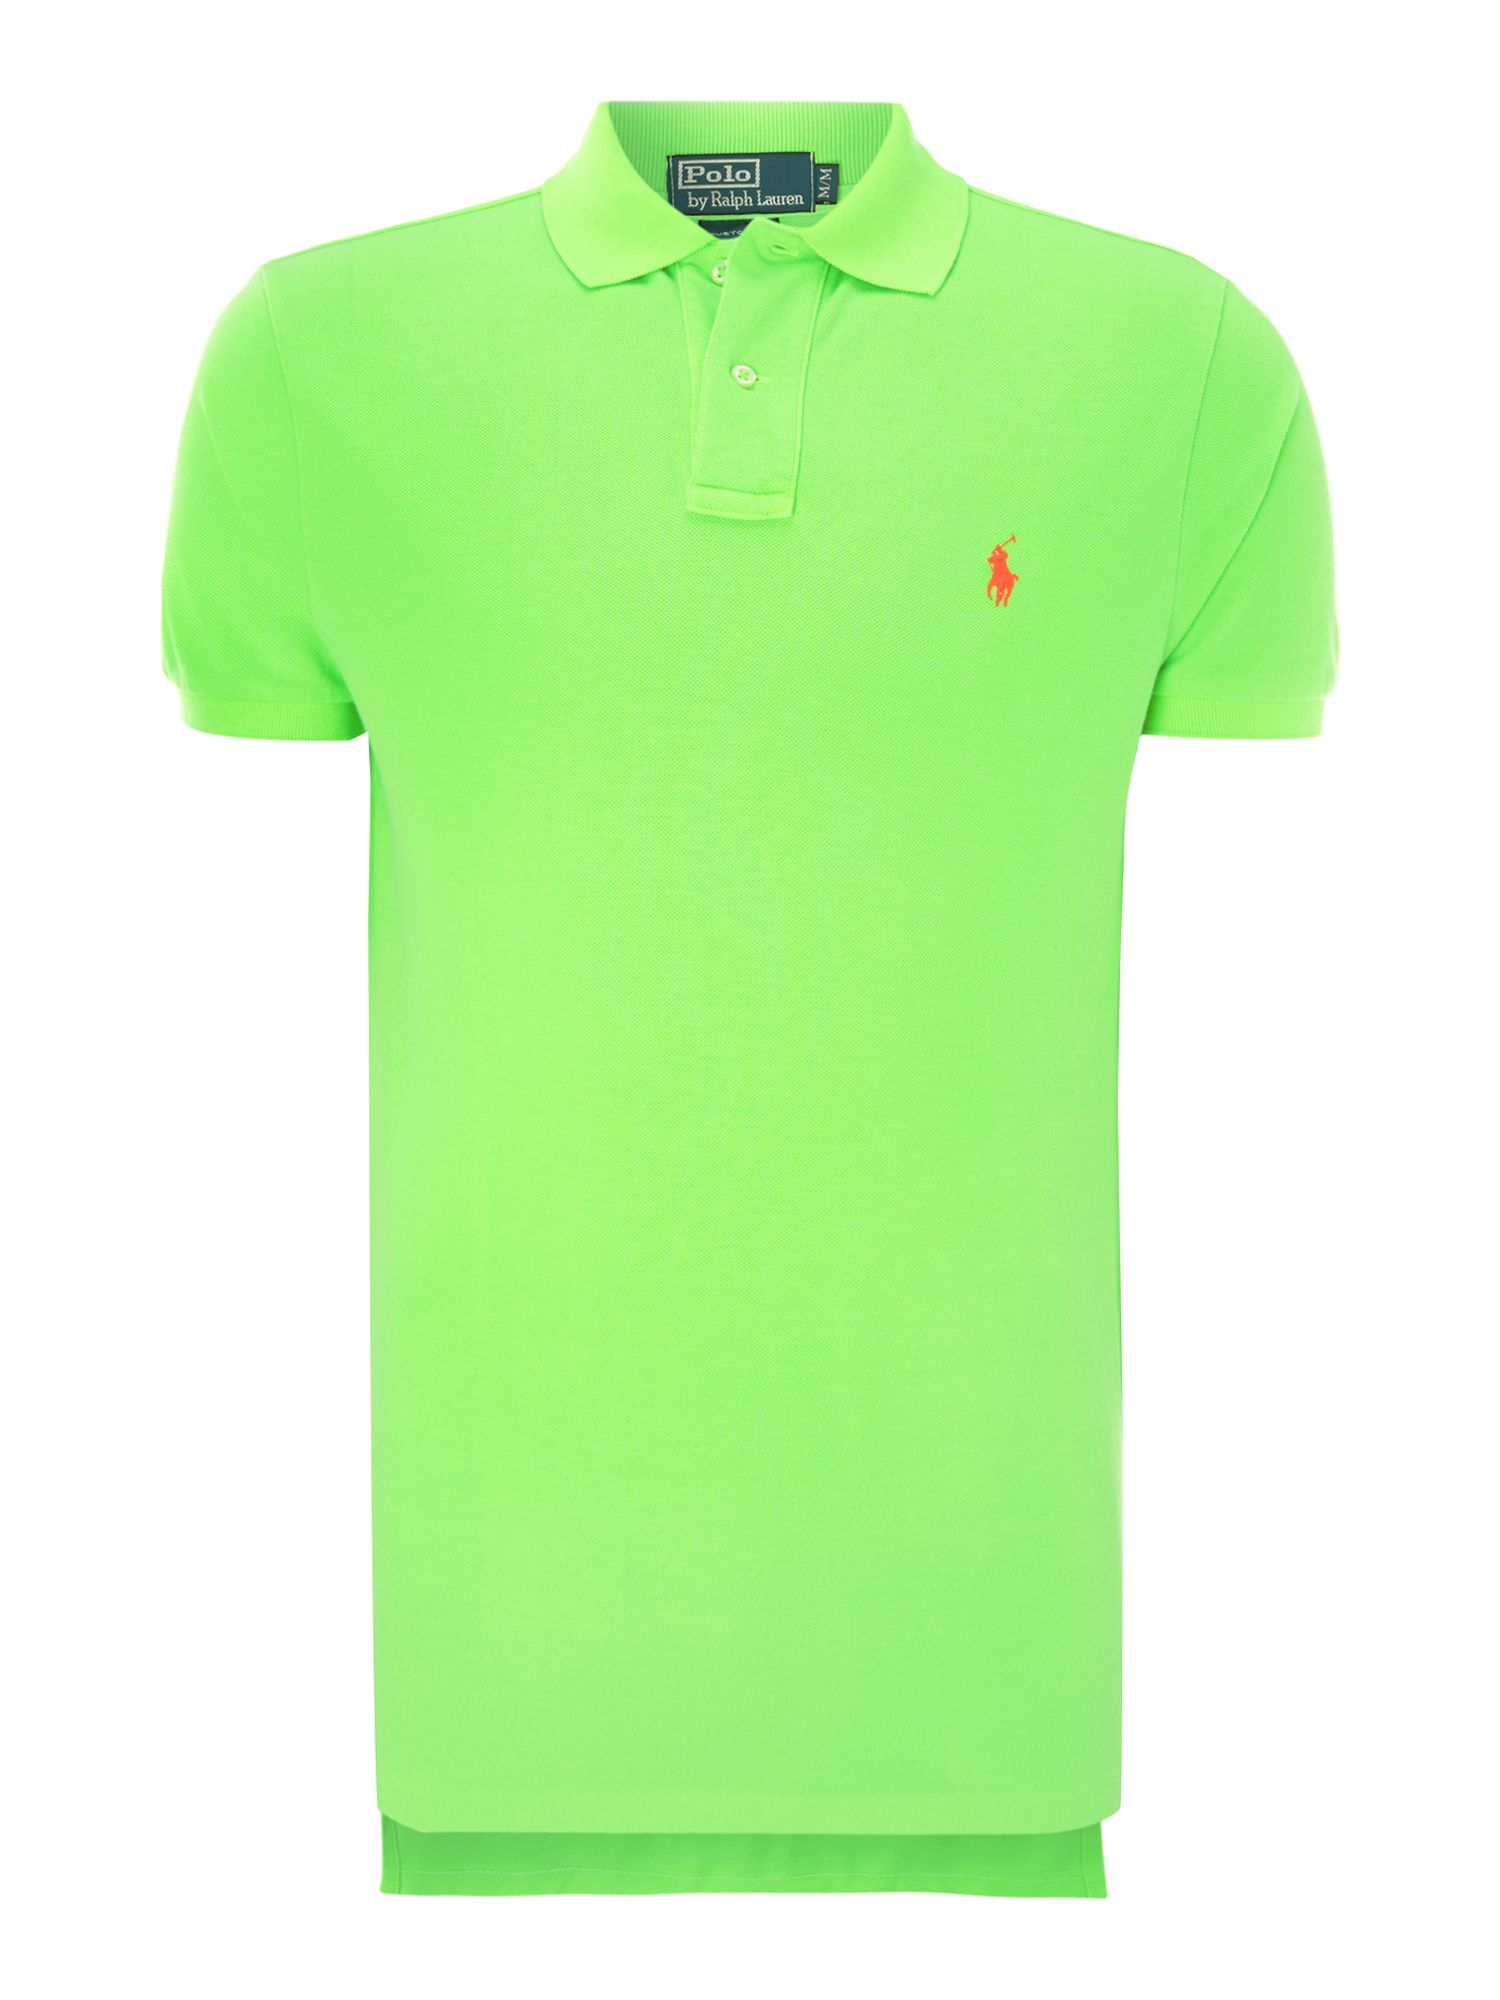 polo ralph lauren neon polo shirt in green for men lyst